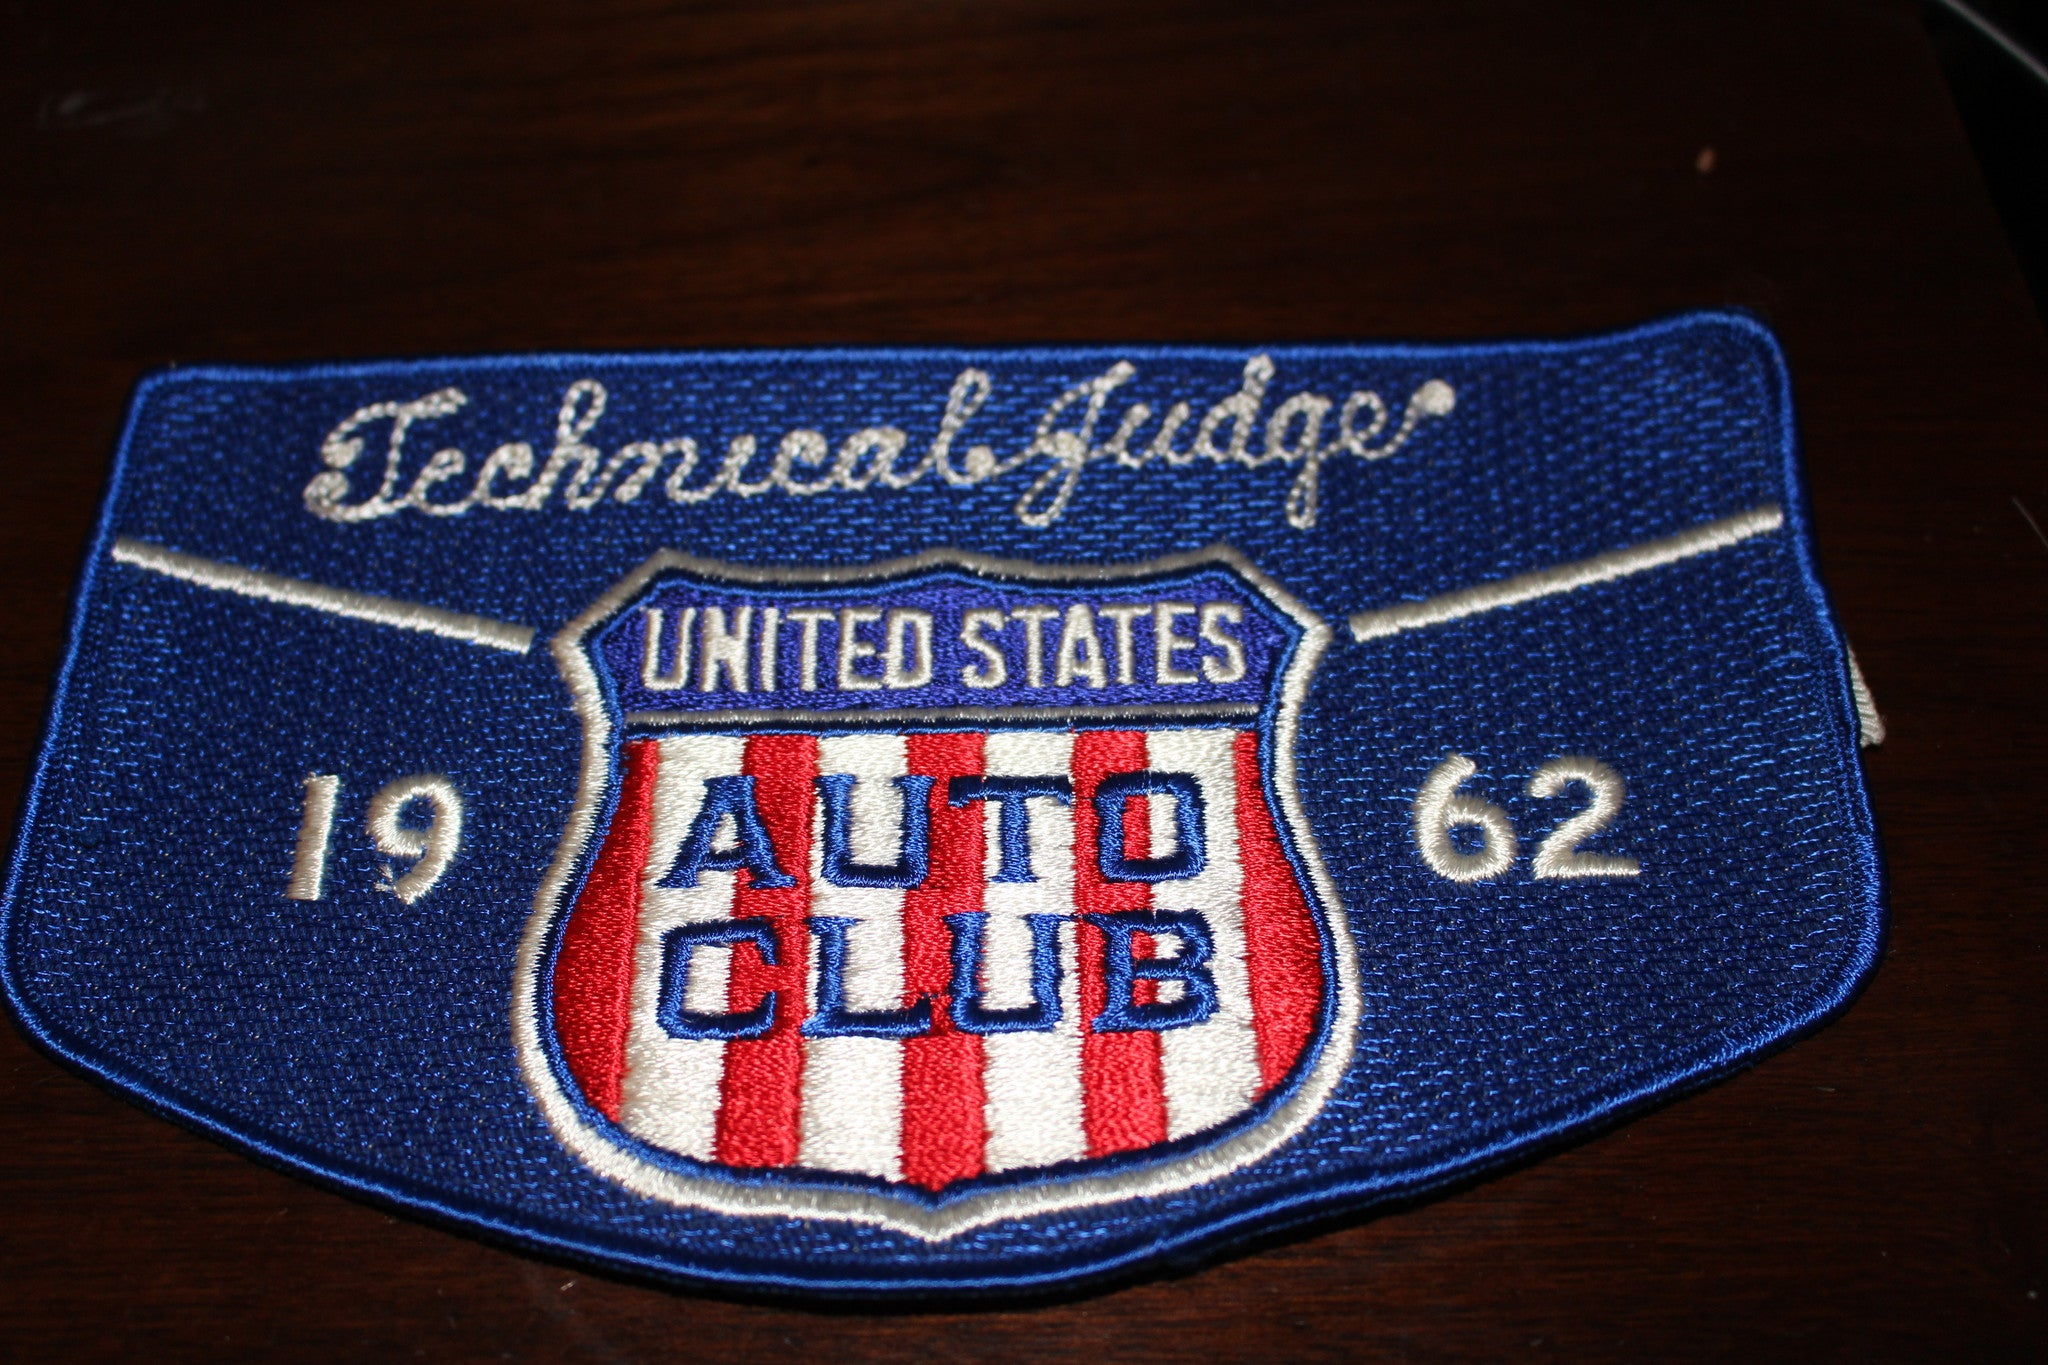 1962 Indianapolis 500 Technical Judge Arm Band - Vintage Indy Sports